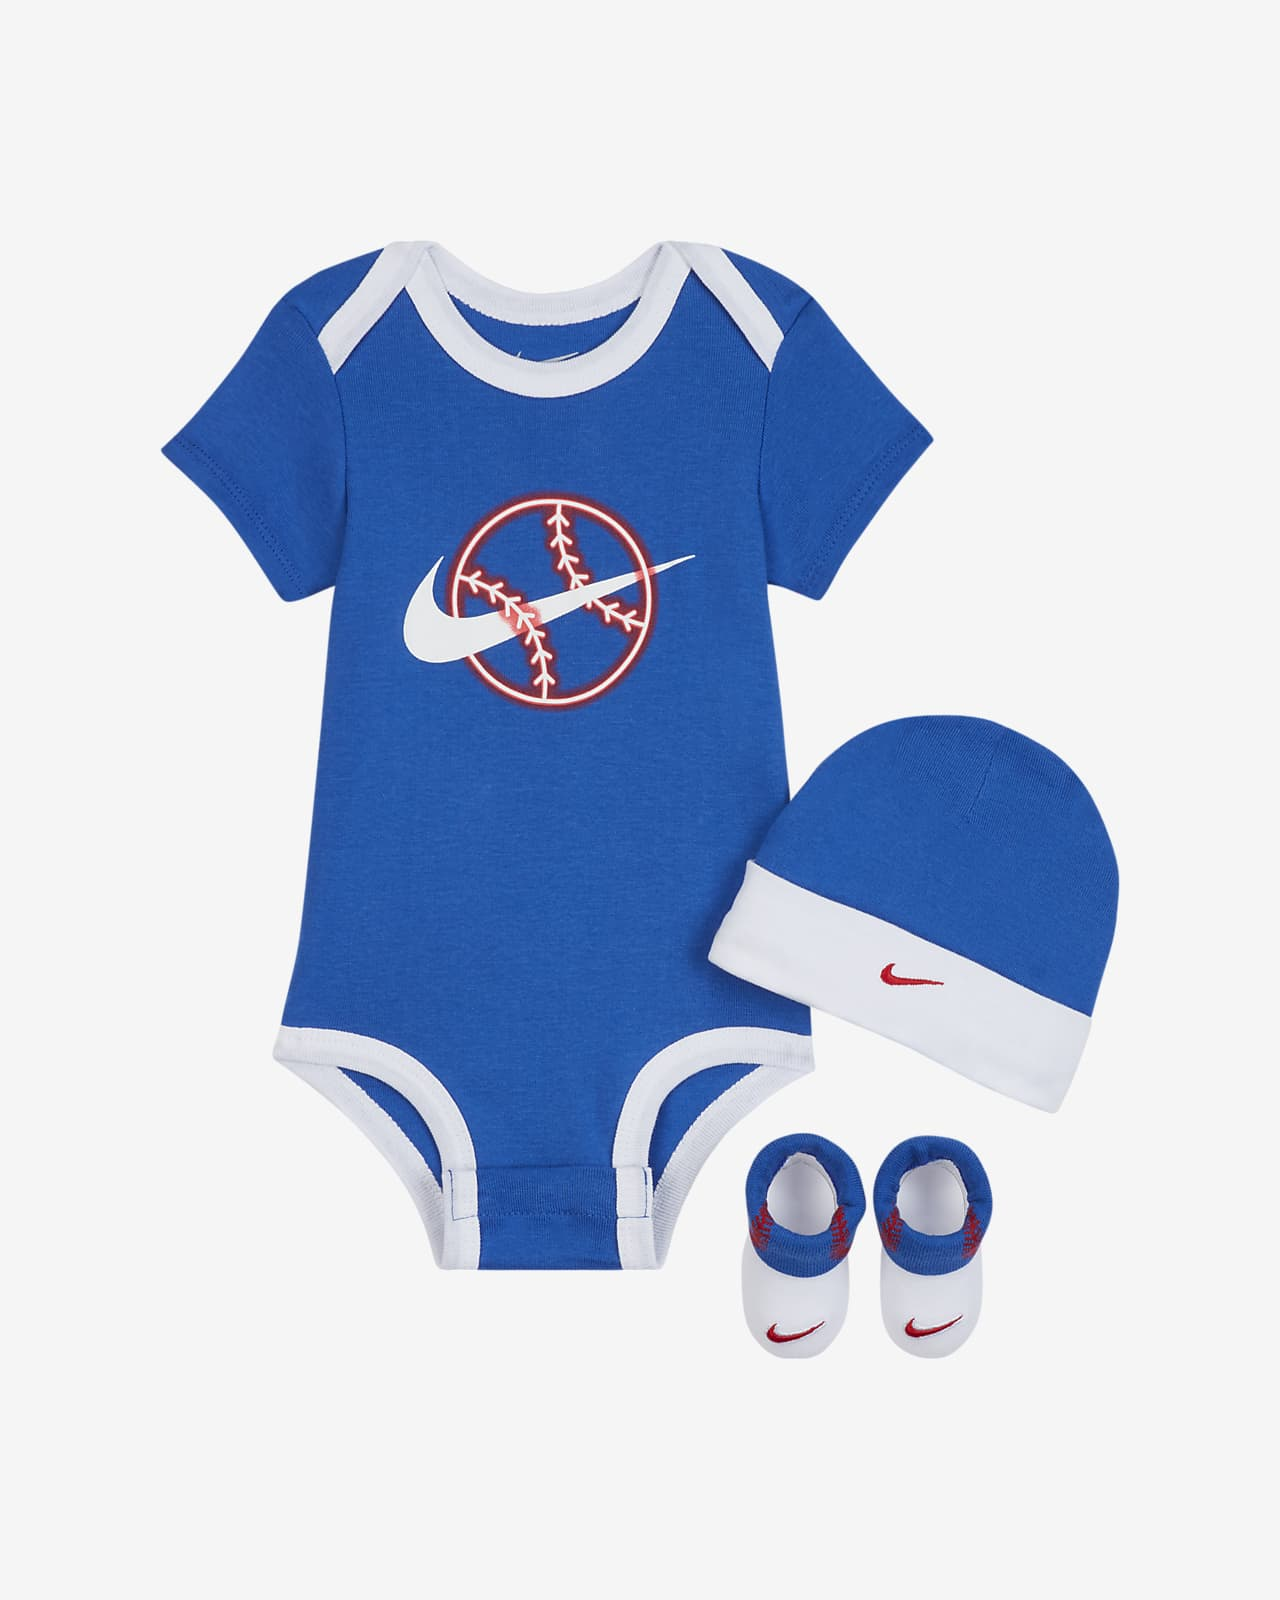 Nike Baby (6-12M) Bodysuit, Hat and Booties Set